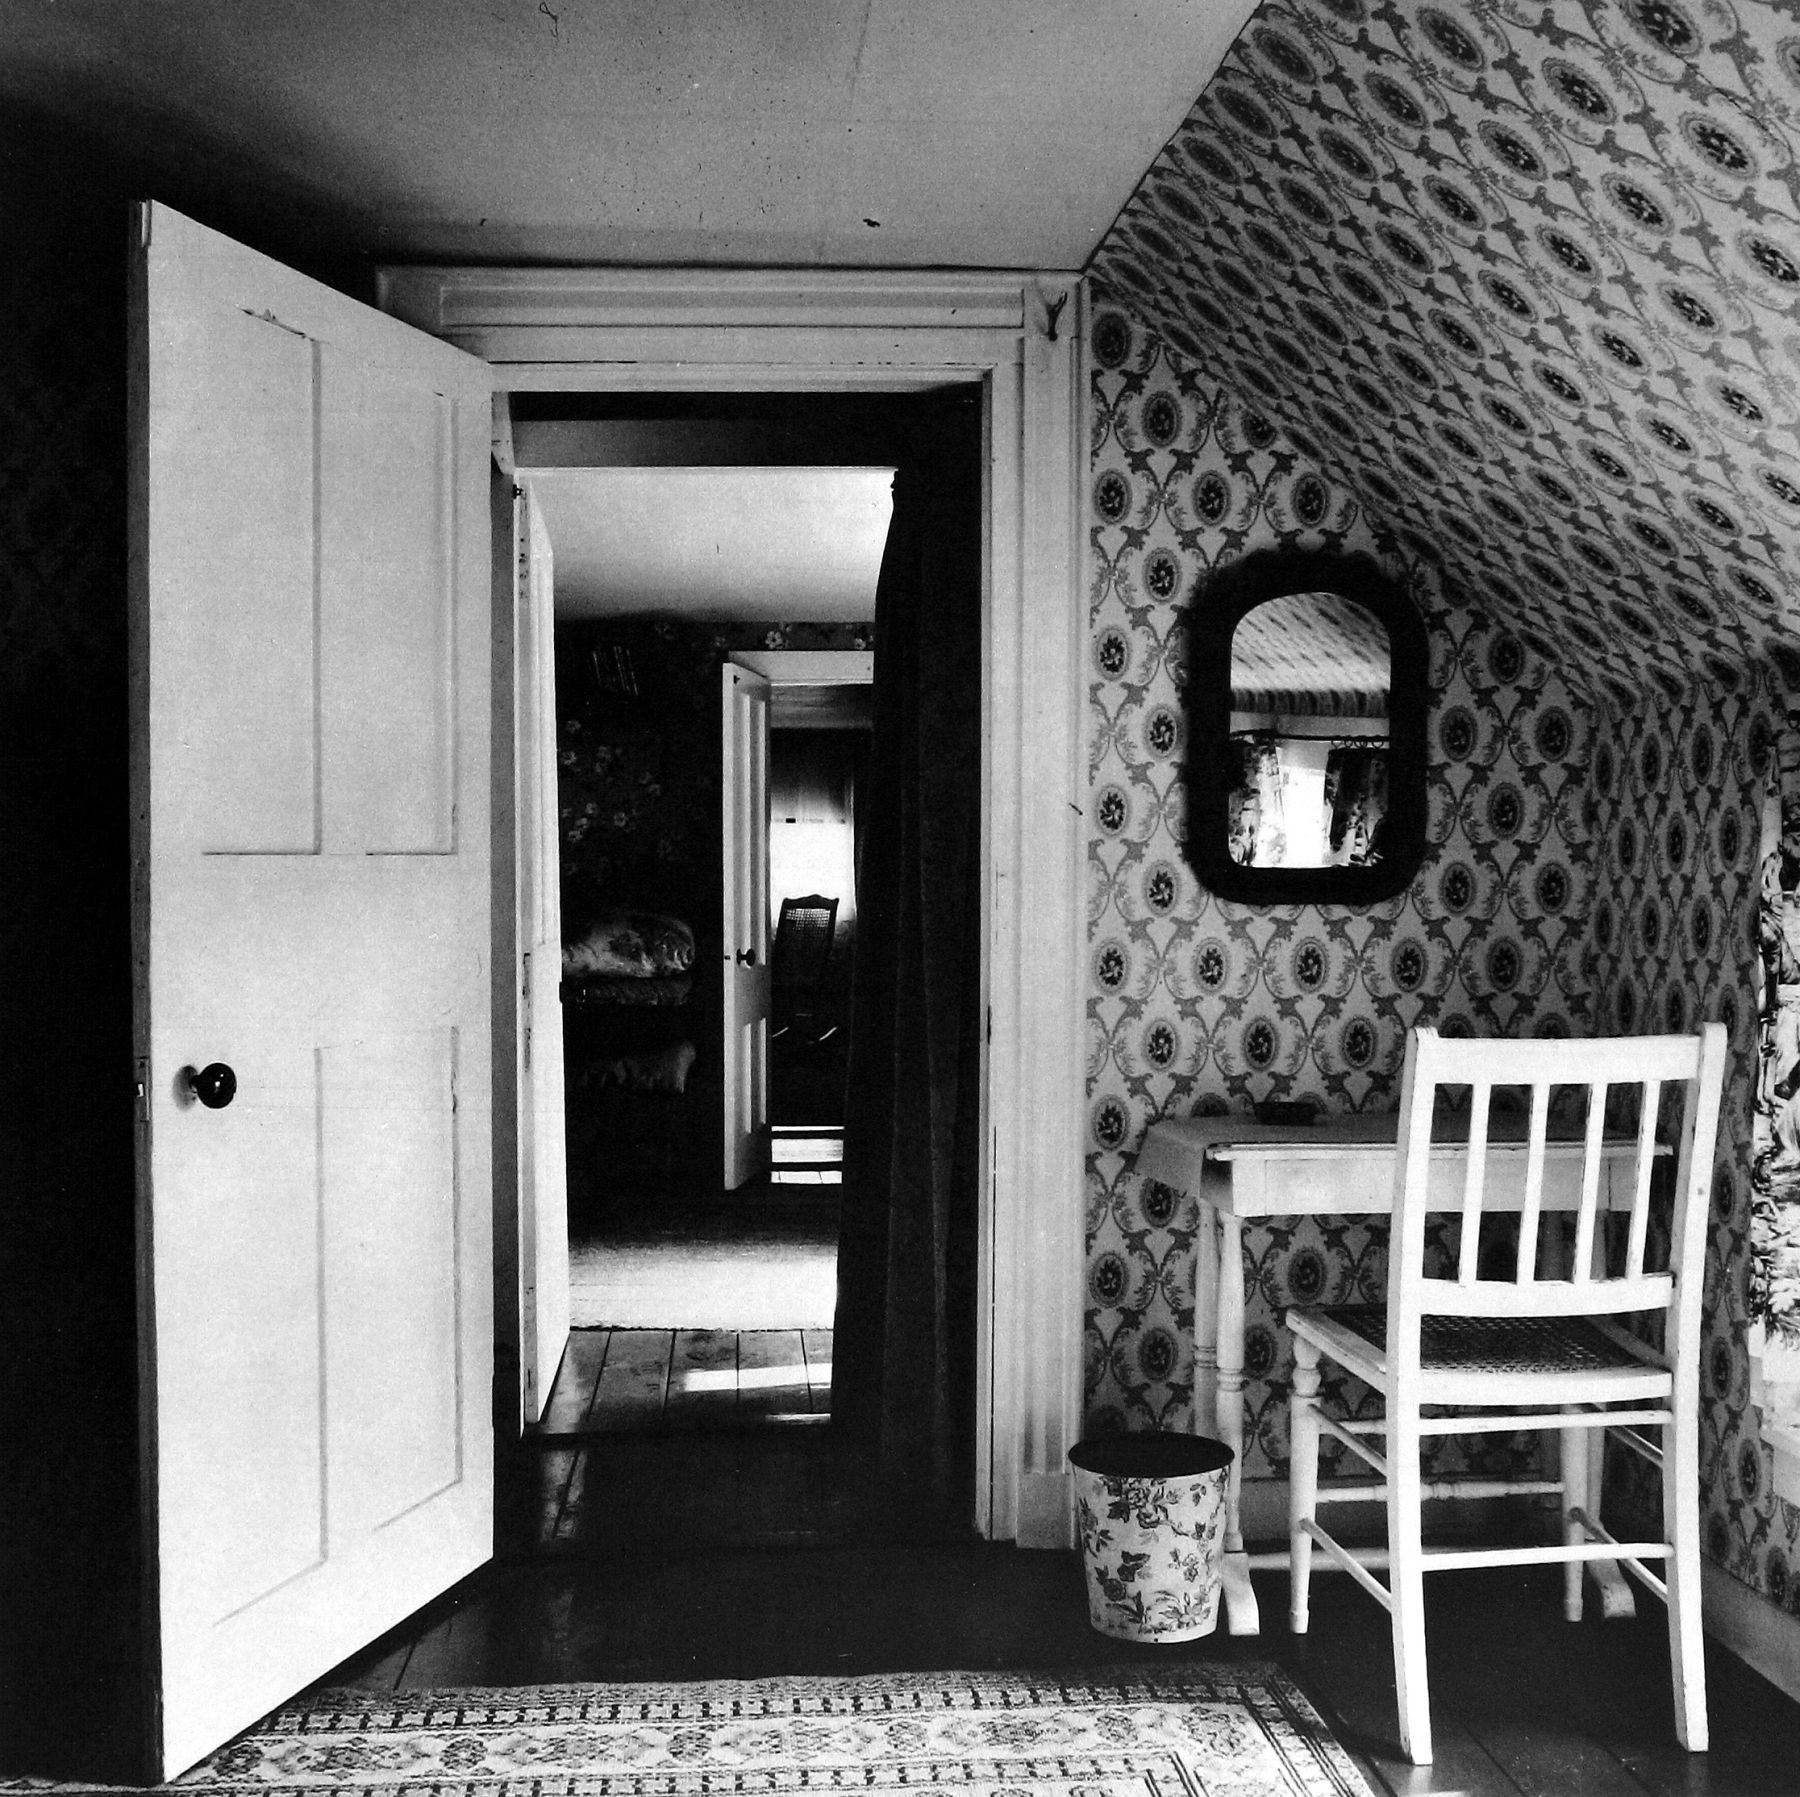 """Walker Evans - Upstairs Room, Walpole, Maine, 1962, from the portfolio """"Message from the Interior,"""" New York: Eakins Press, 1966 - Howard Greenberg Gallery - 2018"""